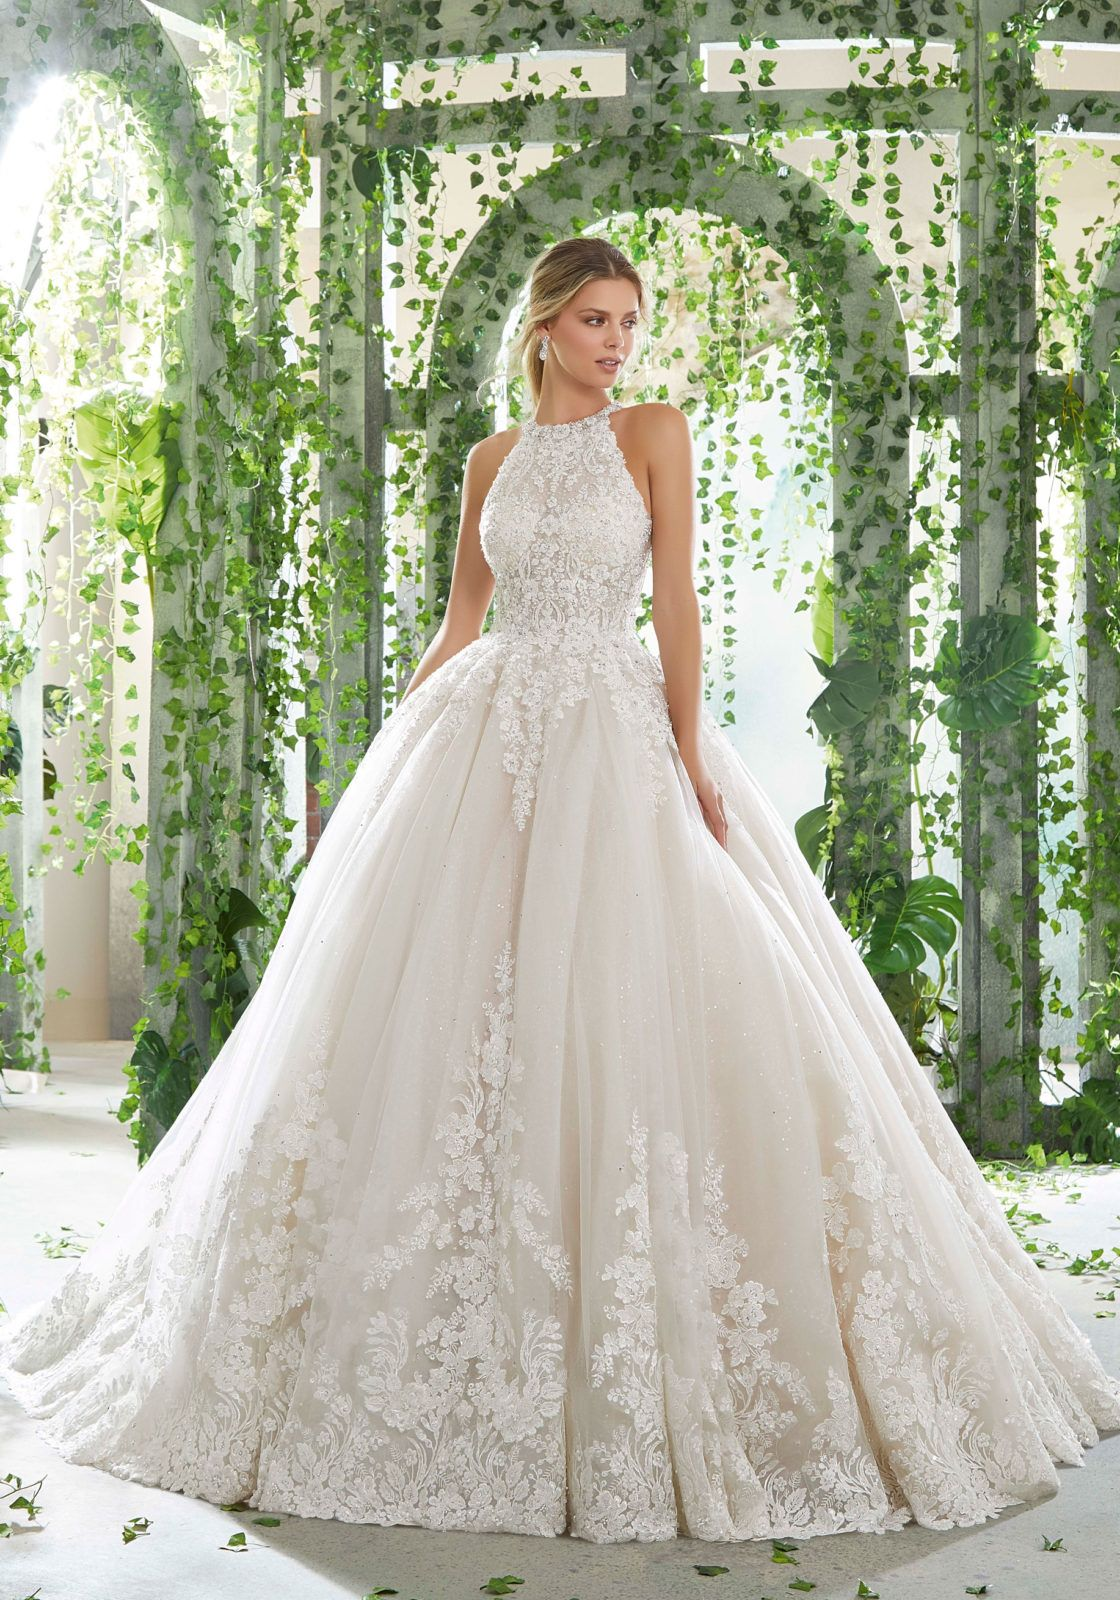 Primavera wedding dress in wedding wonders pinterest